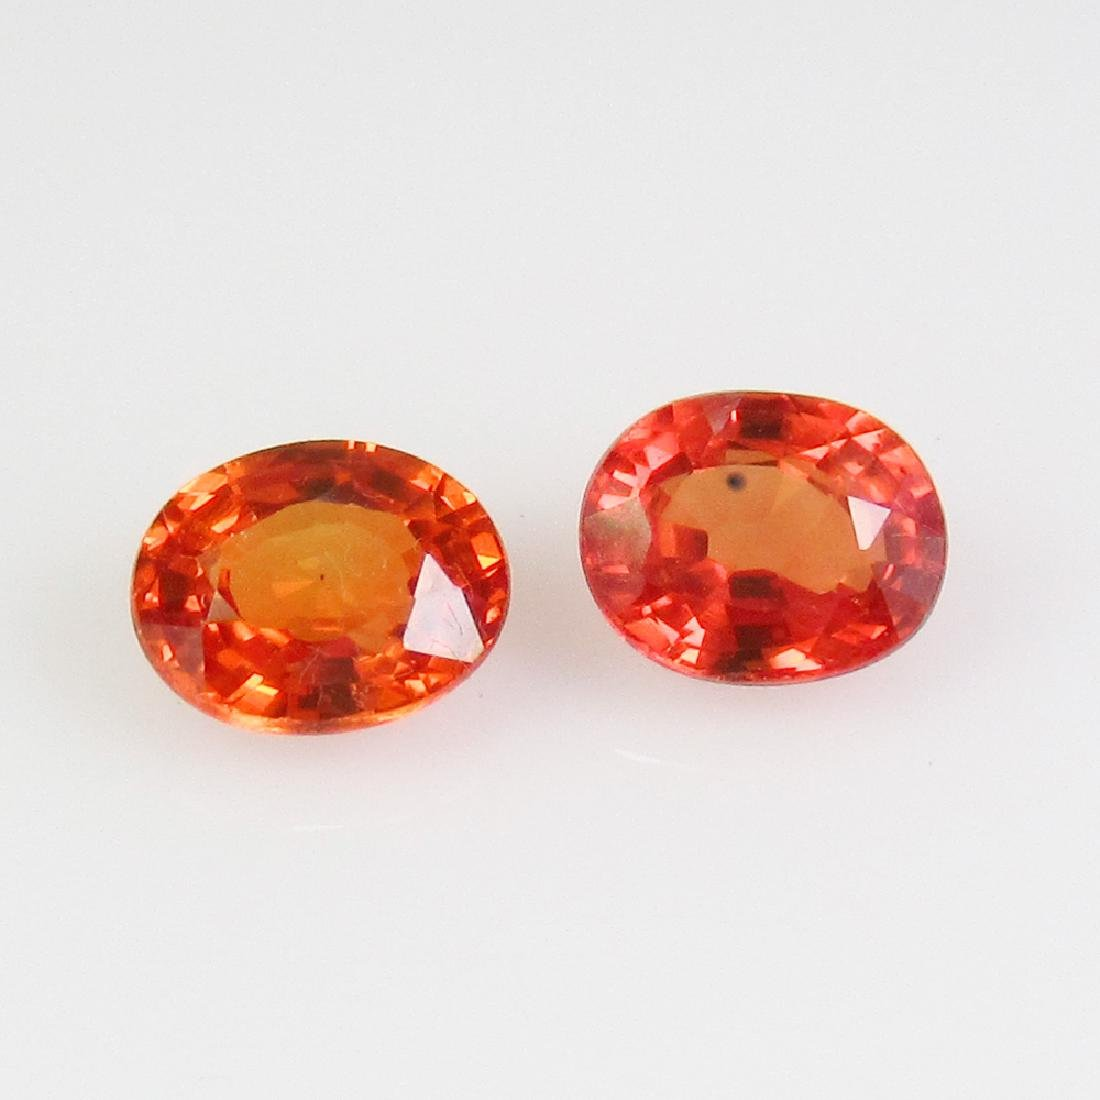 1.01 Ct Genuine Orange Sapphire 5x4 mm Oval Pair